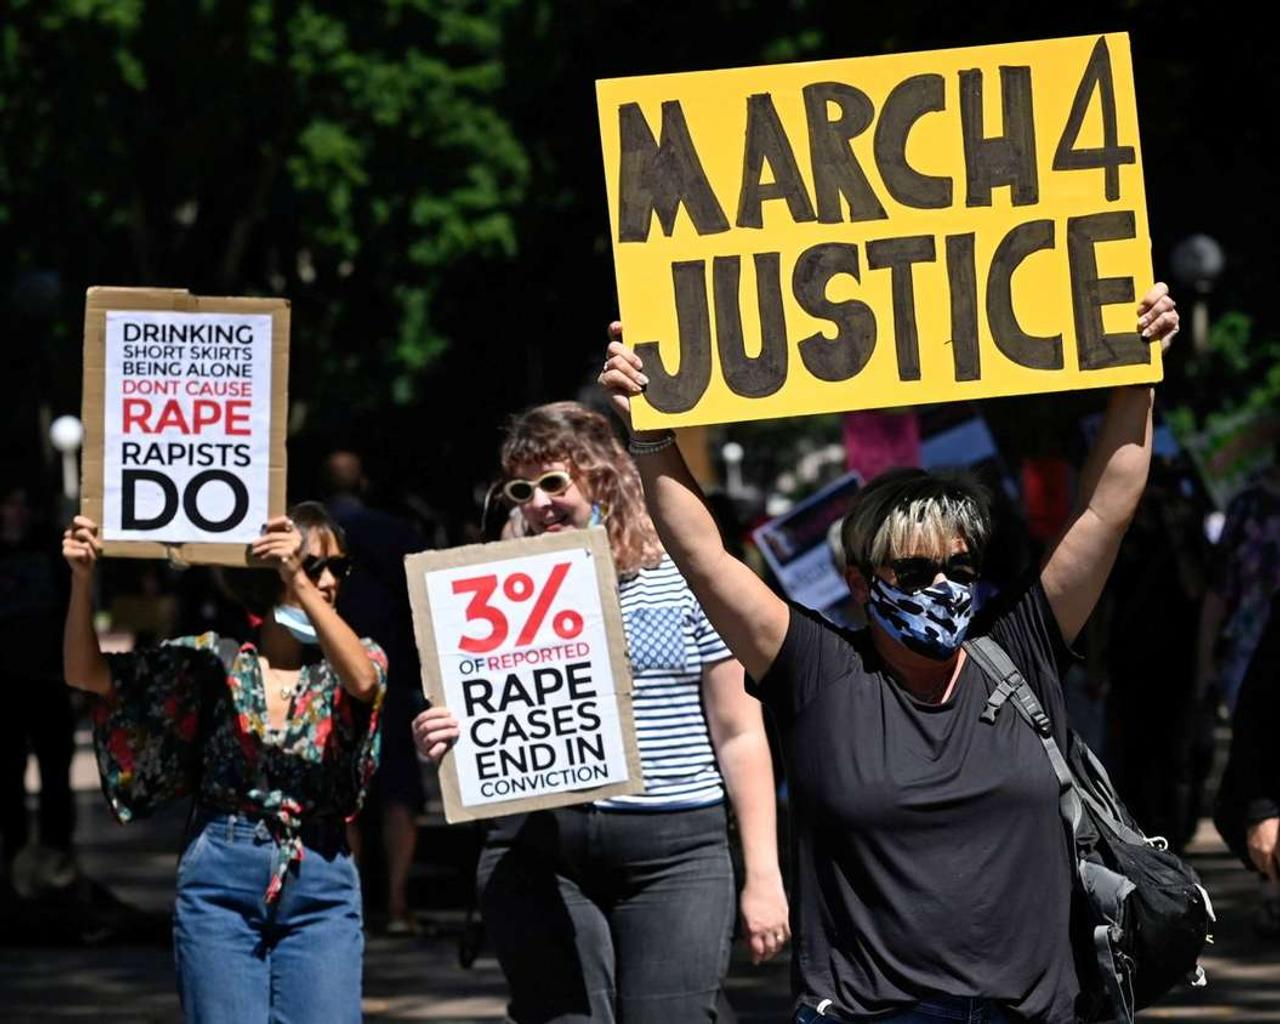 Australia March 4 Justice: Tens of thousands of people have turned out to marches across Australia